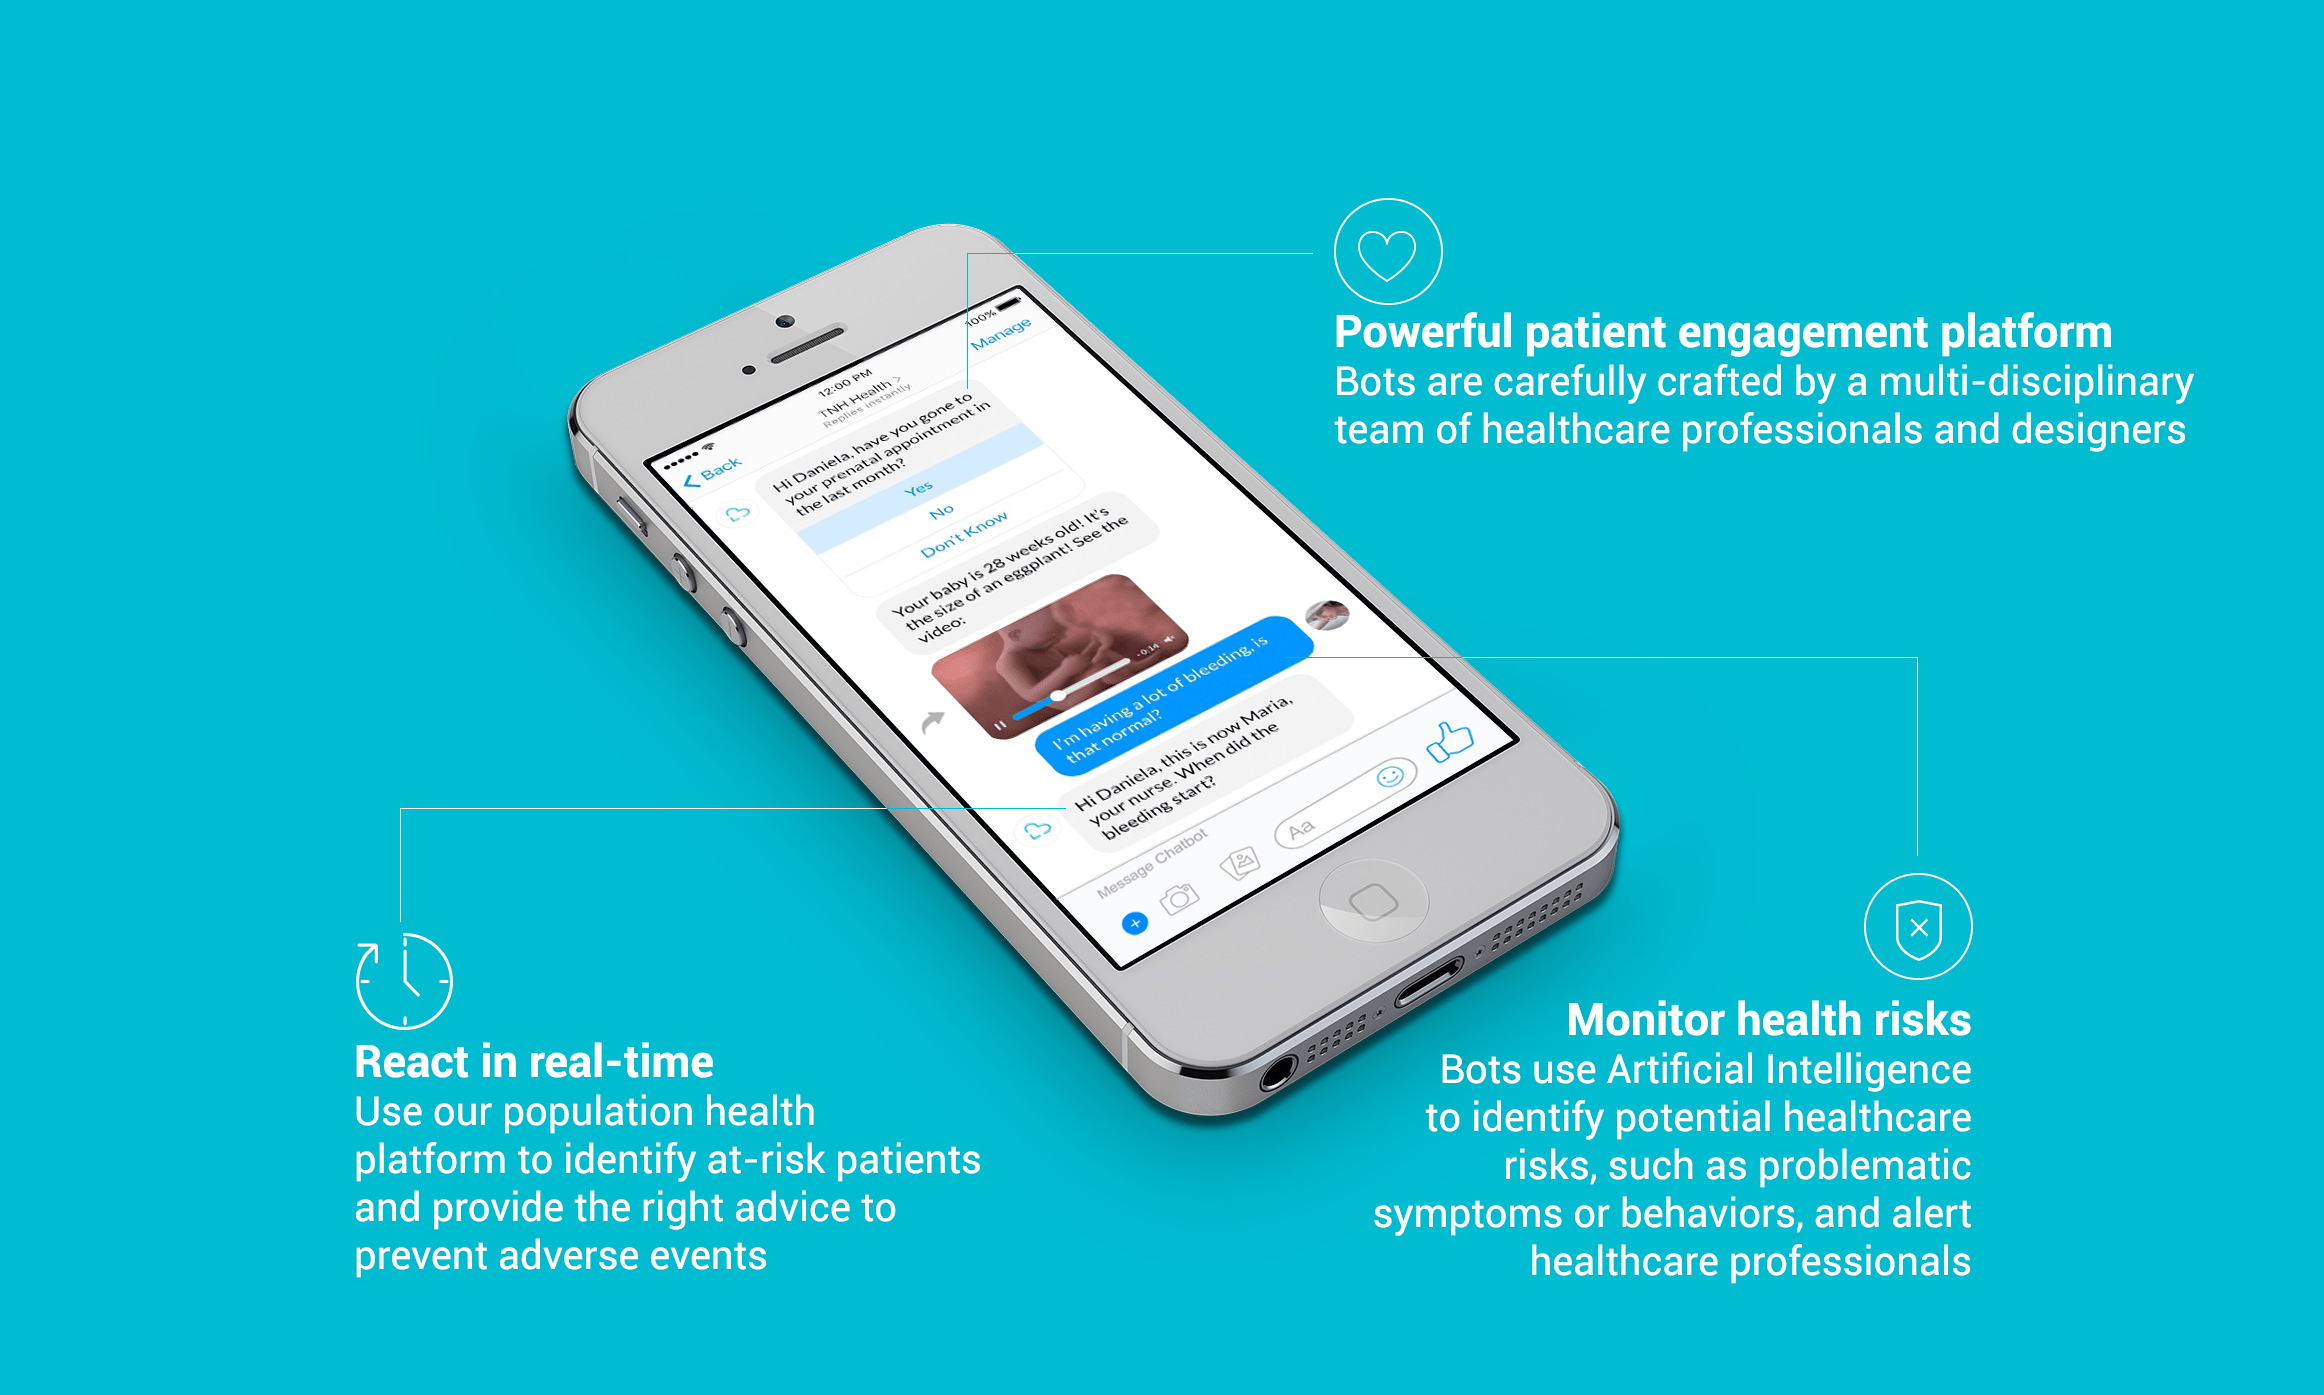 A smartphone shows how it should look like a conversation with a chatbot. Next to the images are features of the product: react in real-time; patient engagement platform and monitor health risks.